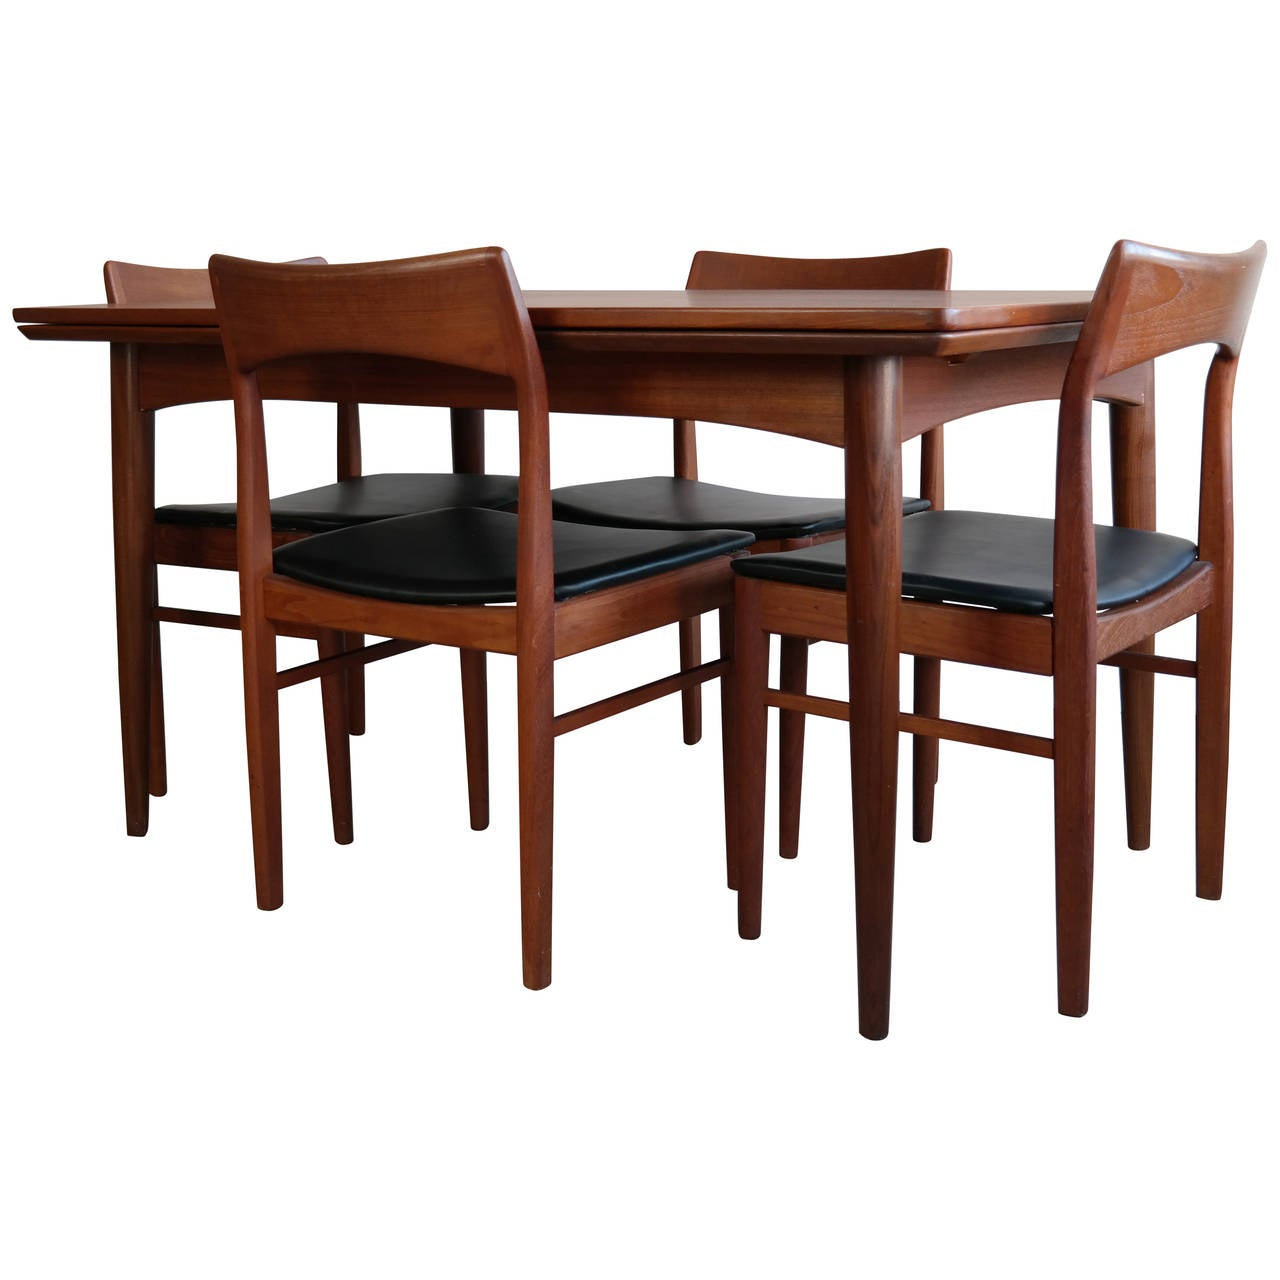 Danish modern dining set in teak at 1stdibs for Dining room tables johannesburg